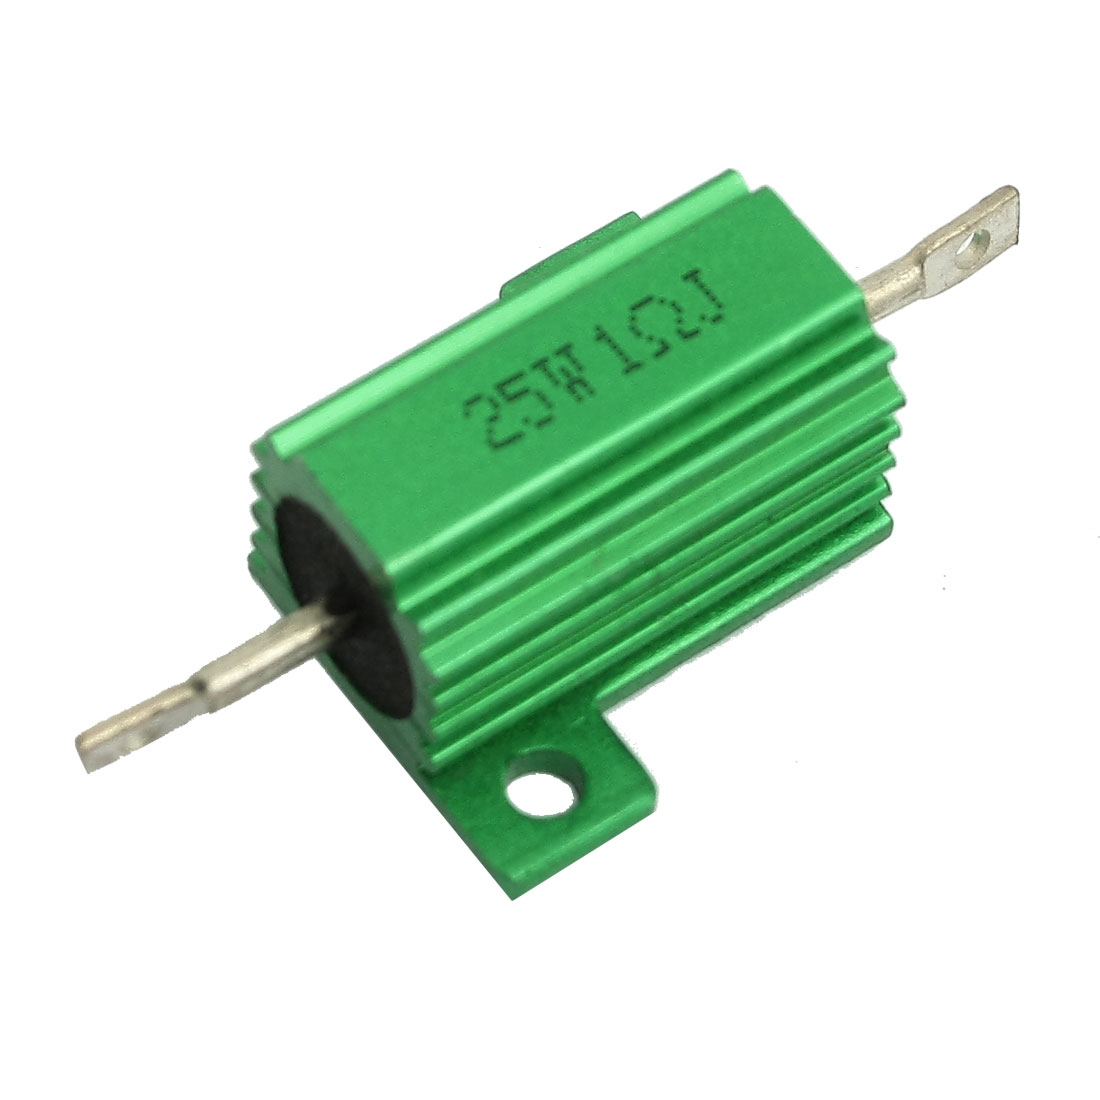 Green Aluminum Housed Wirewound Resistor 25W 1 Ohm 5%